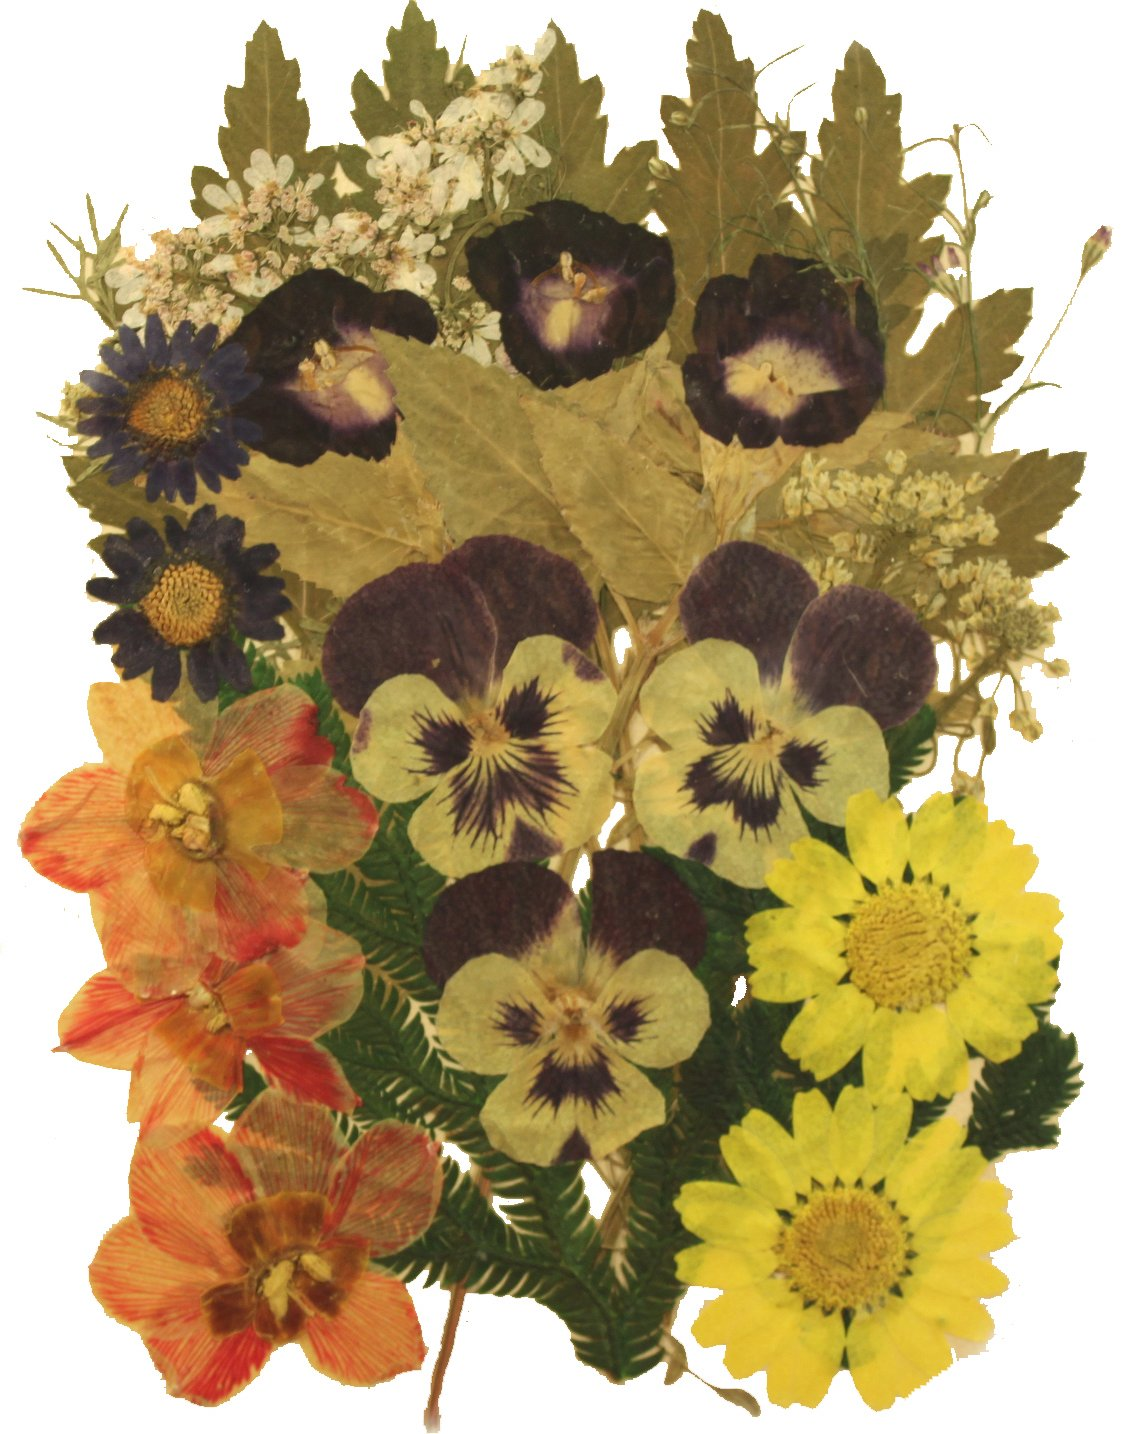 Silver J Pressed Flowers Mix, Morning Glory, Daisy, Daffodils, Alyssum, Pansy, Foliage for Art Craft Card Making Scrapbooking